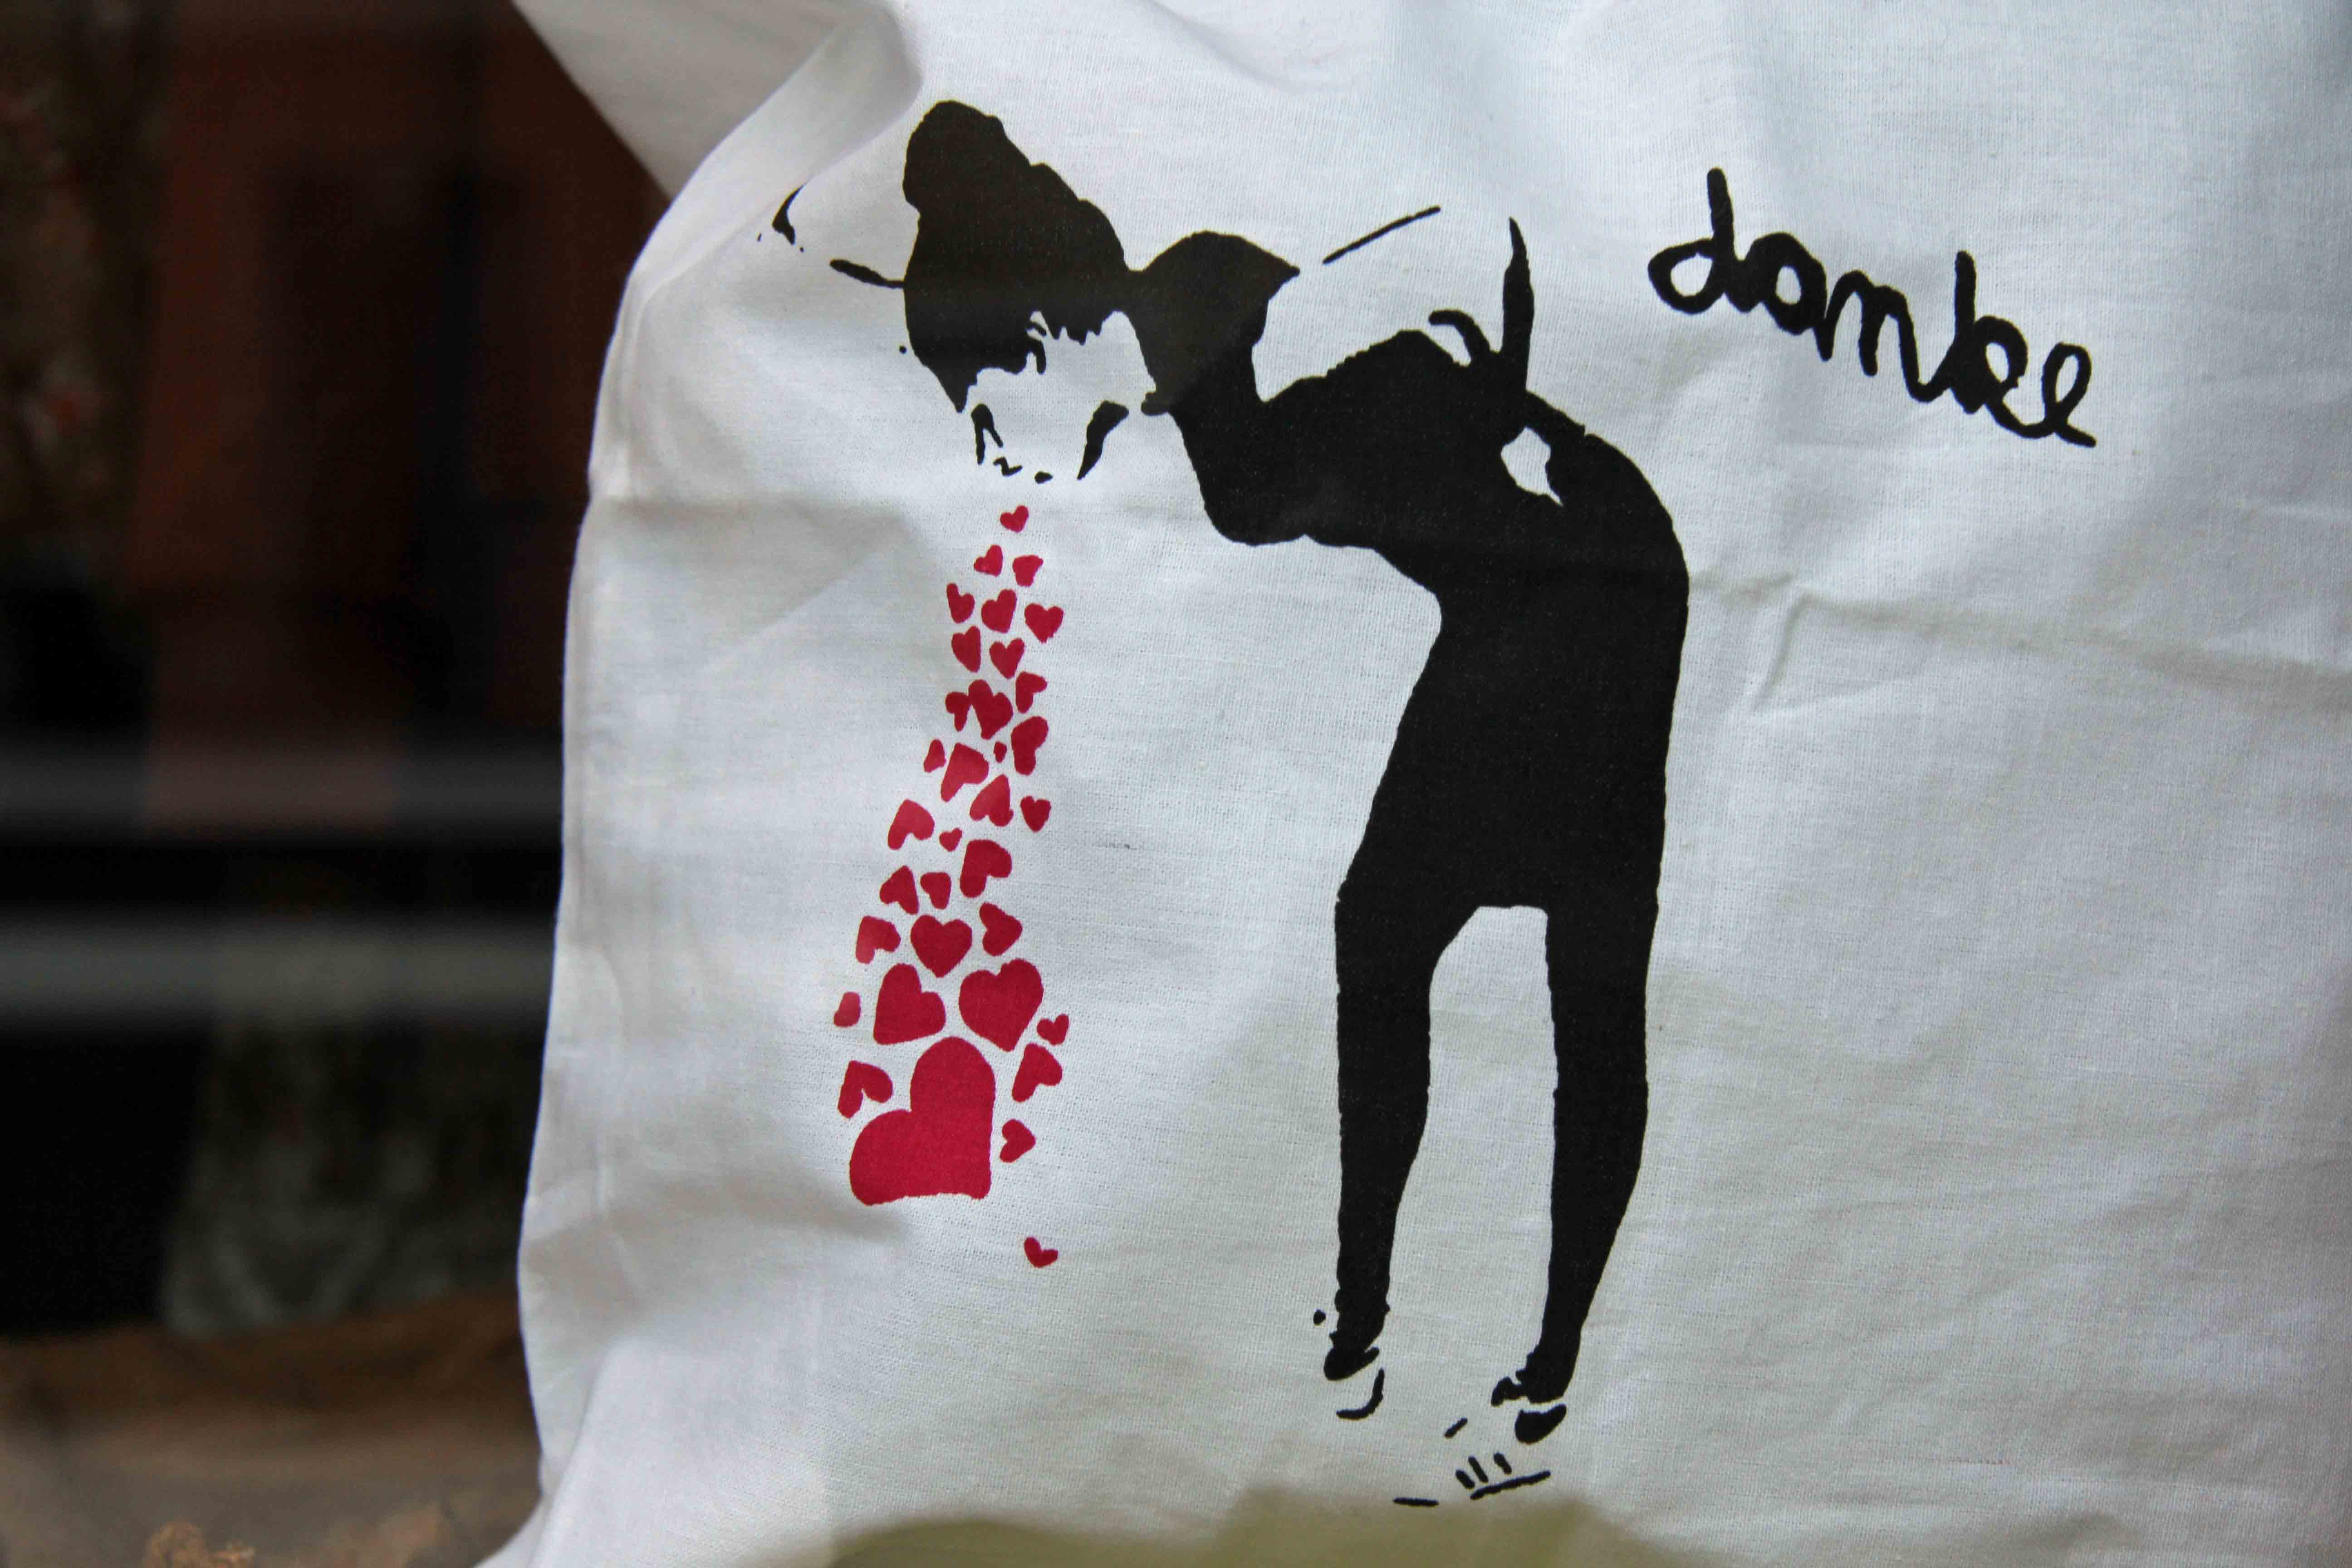 Lovesick - Tote bag (Beutel) with Street Art by Unknown Artist print spotted in a Prenzlauer Berg shop window in Berlin